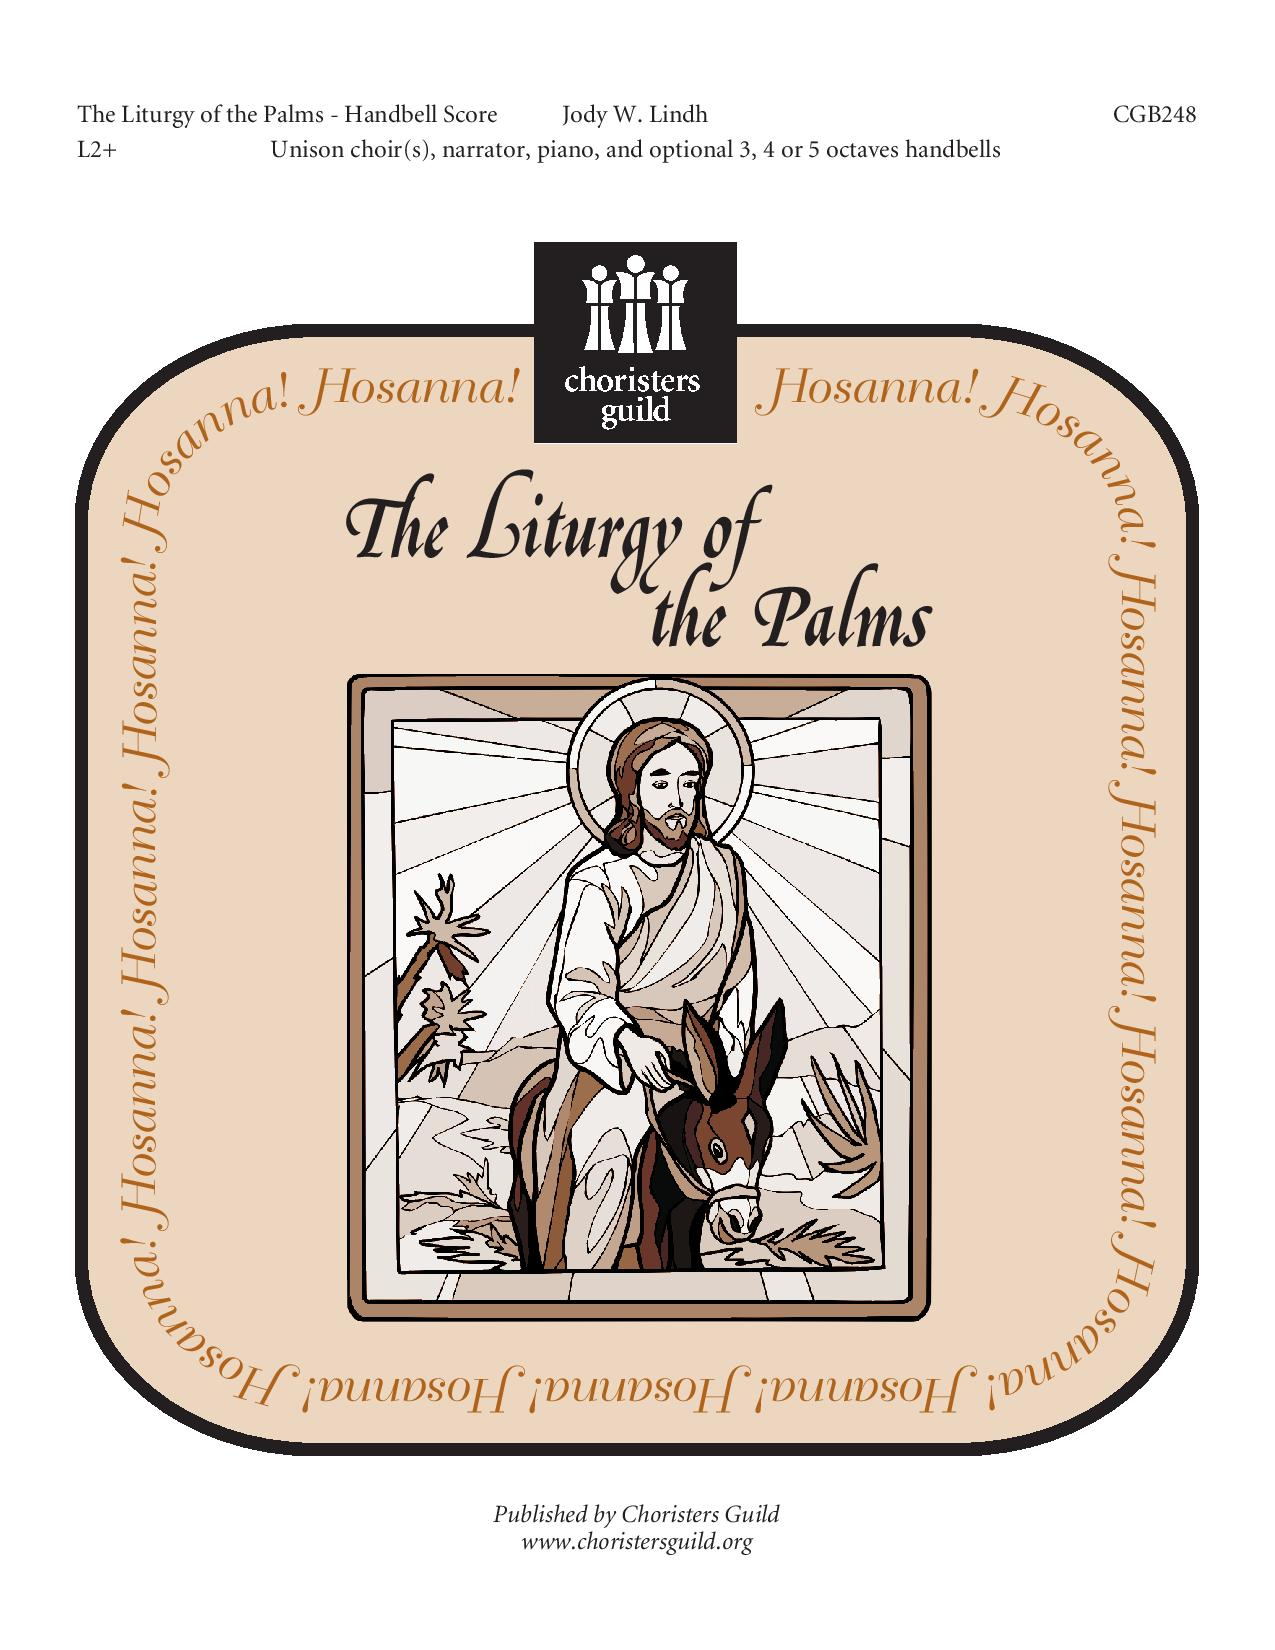 The Liturgy of the Palms (Handbell Score)